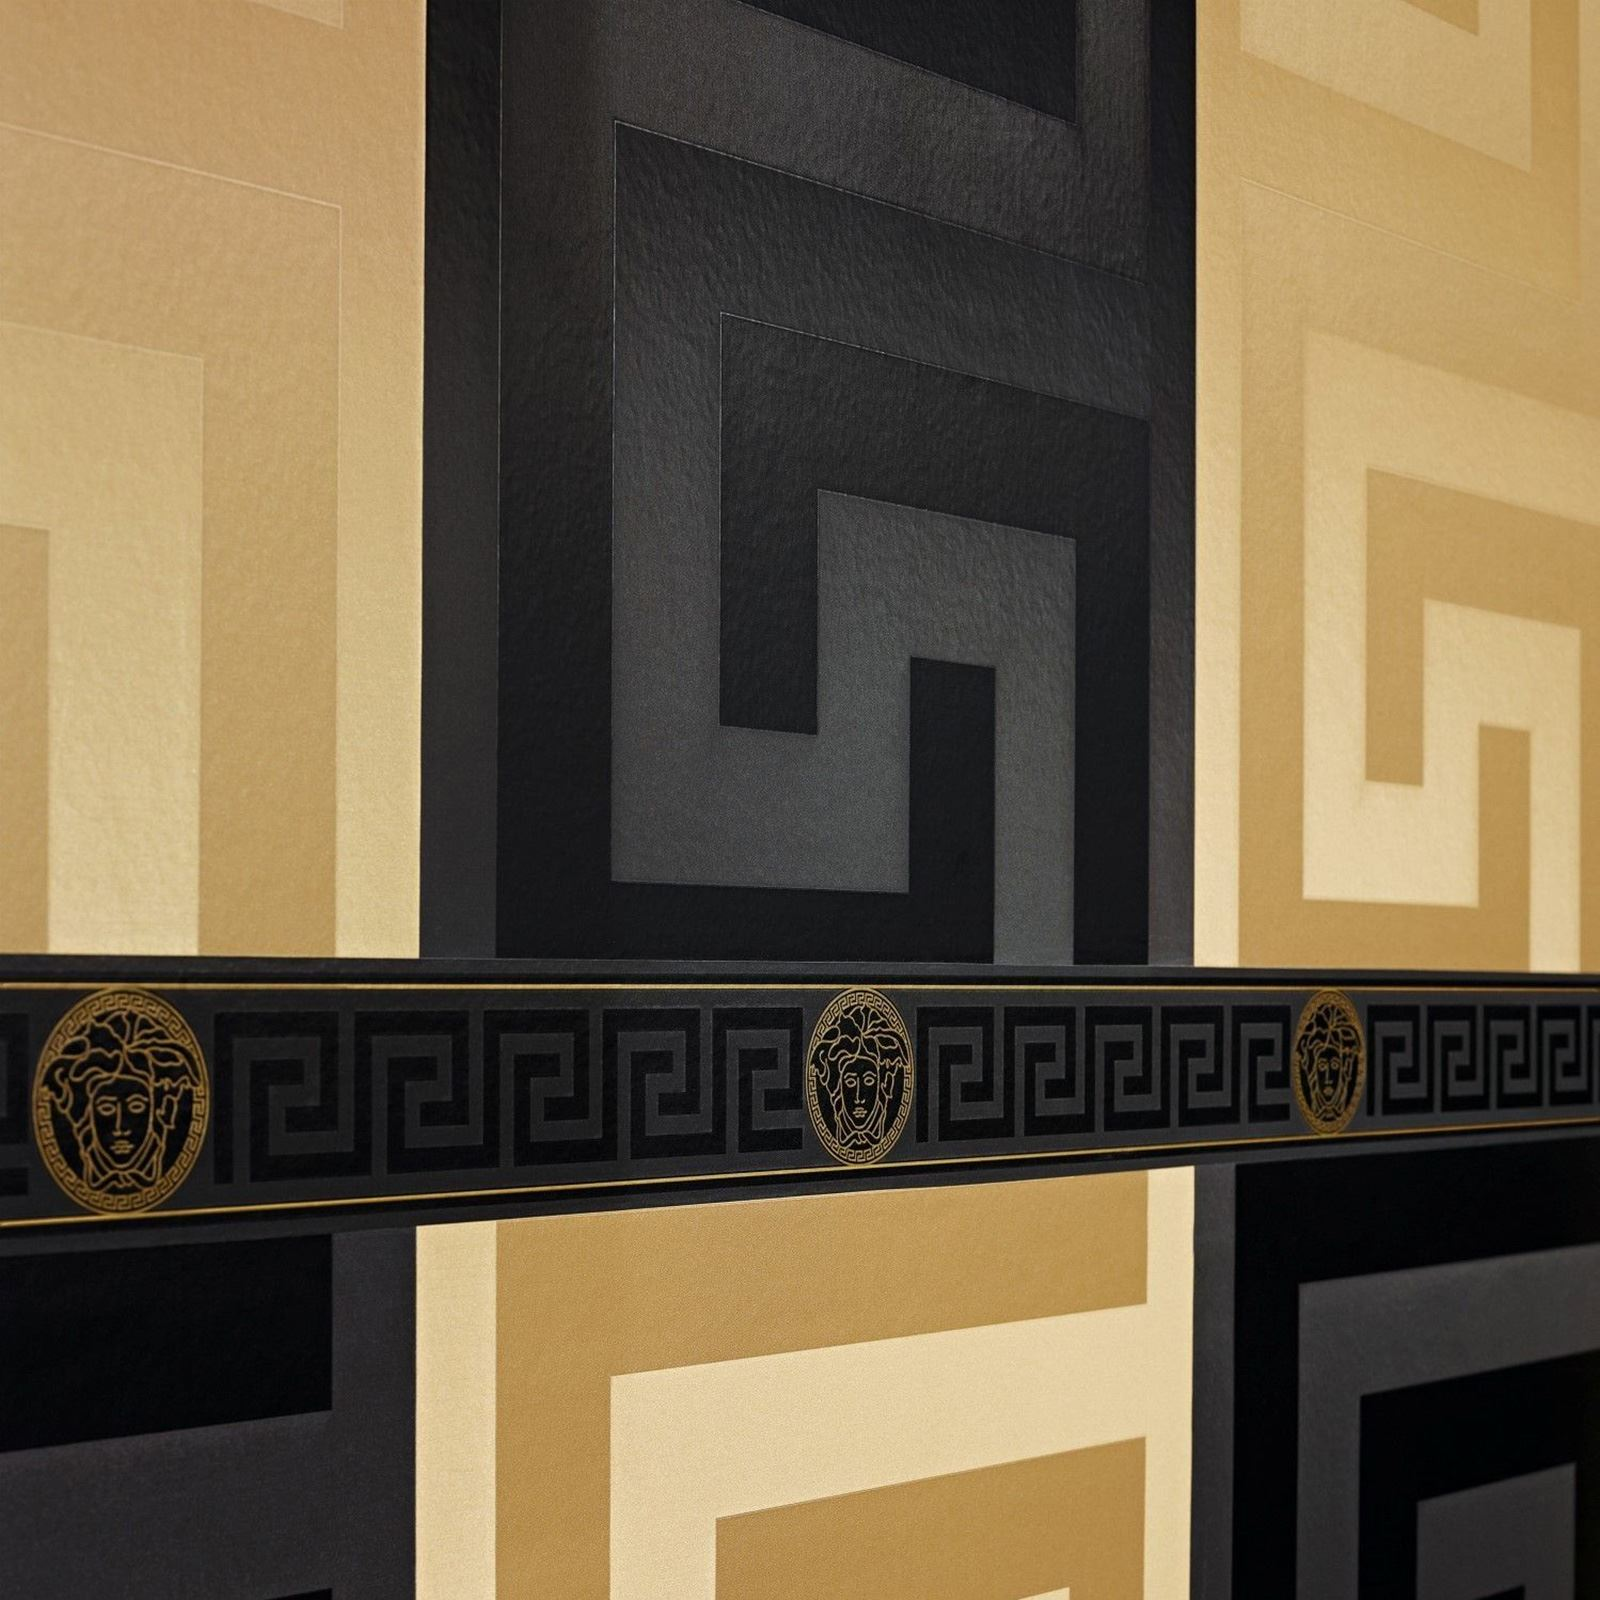 VERSACE LUXURY WALLPAPER PARVUS // GREEK KEY PALM LEAVES BAROQUE FLORAL TRAIL